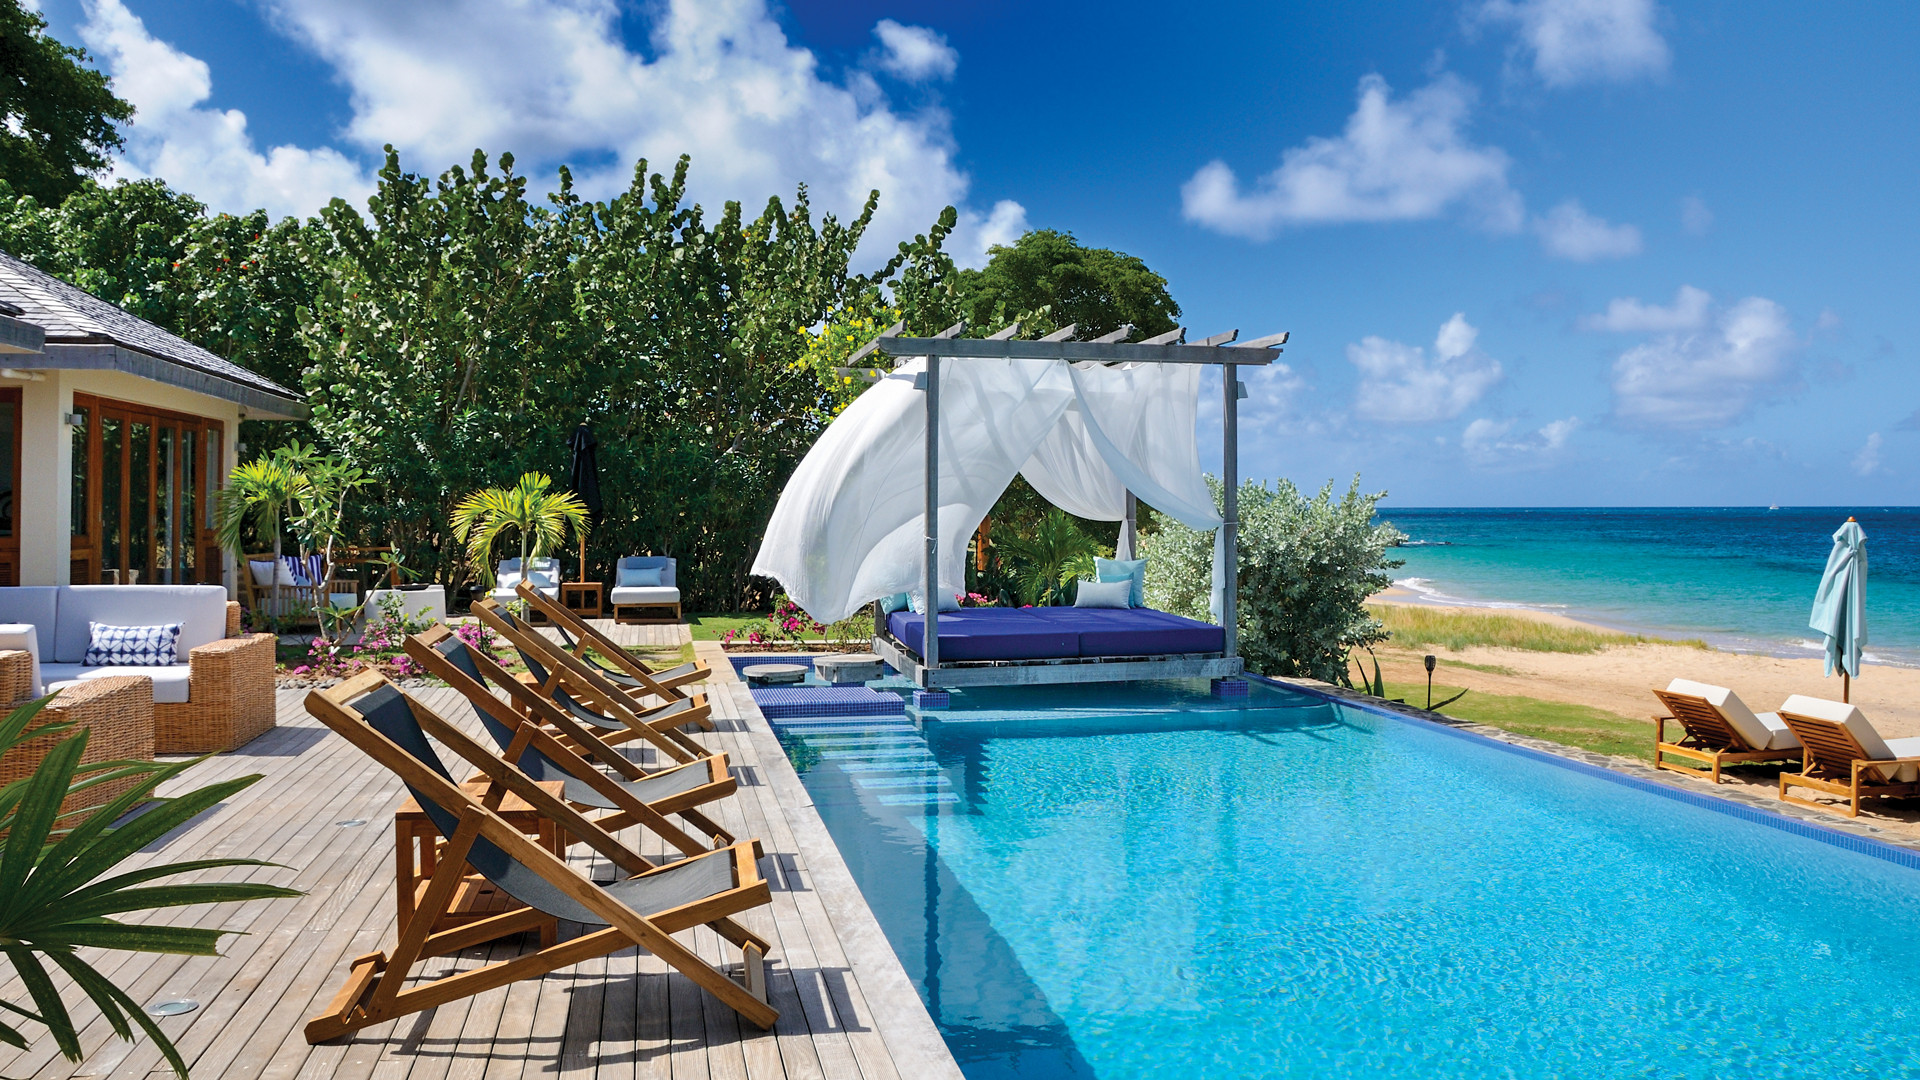 A pool in St. Vincent & the Grenadines